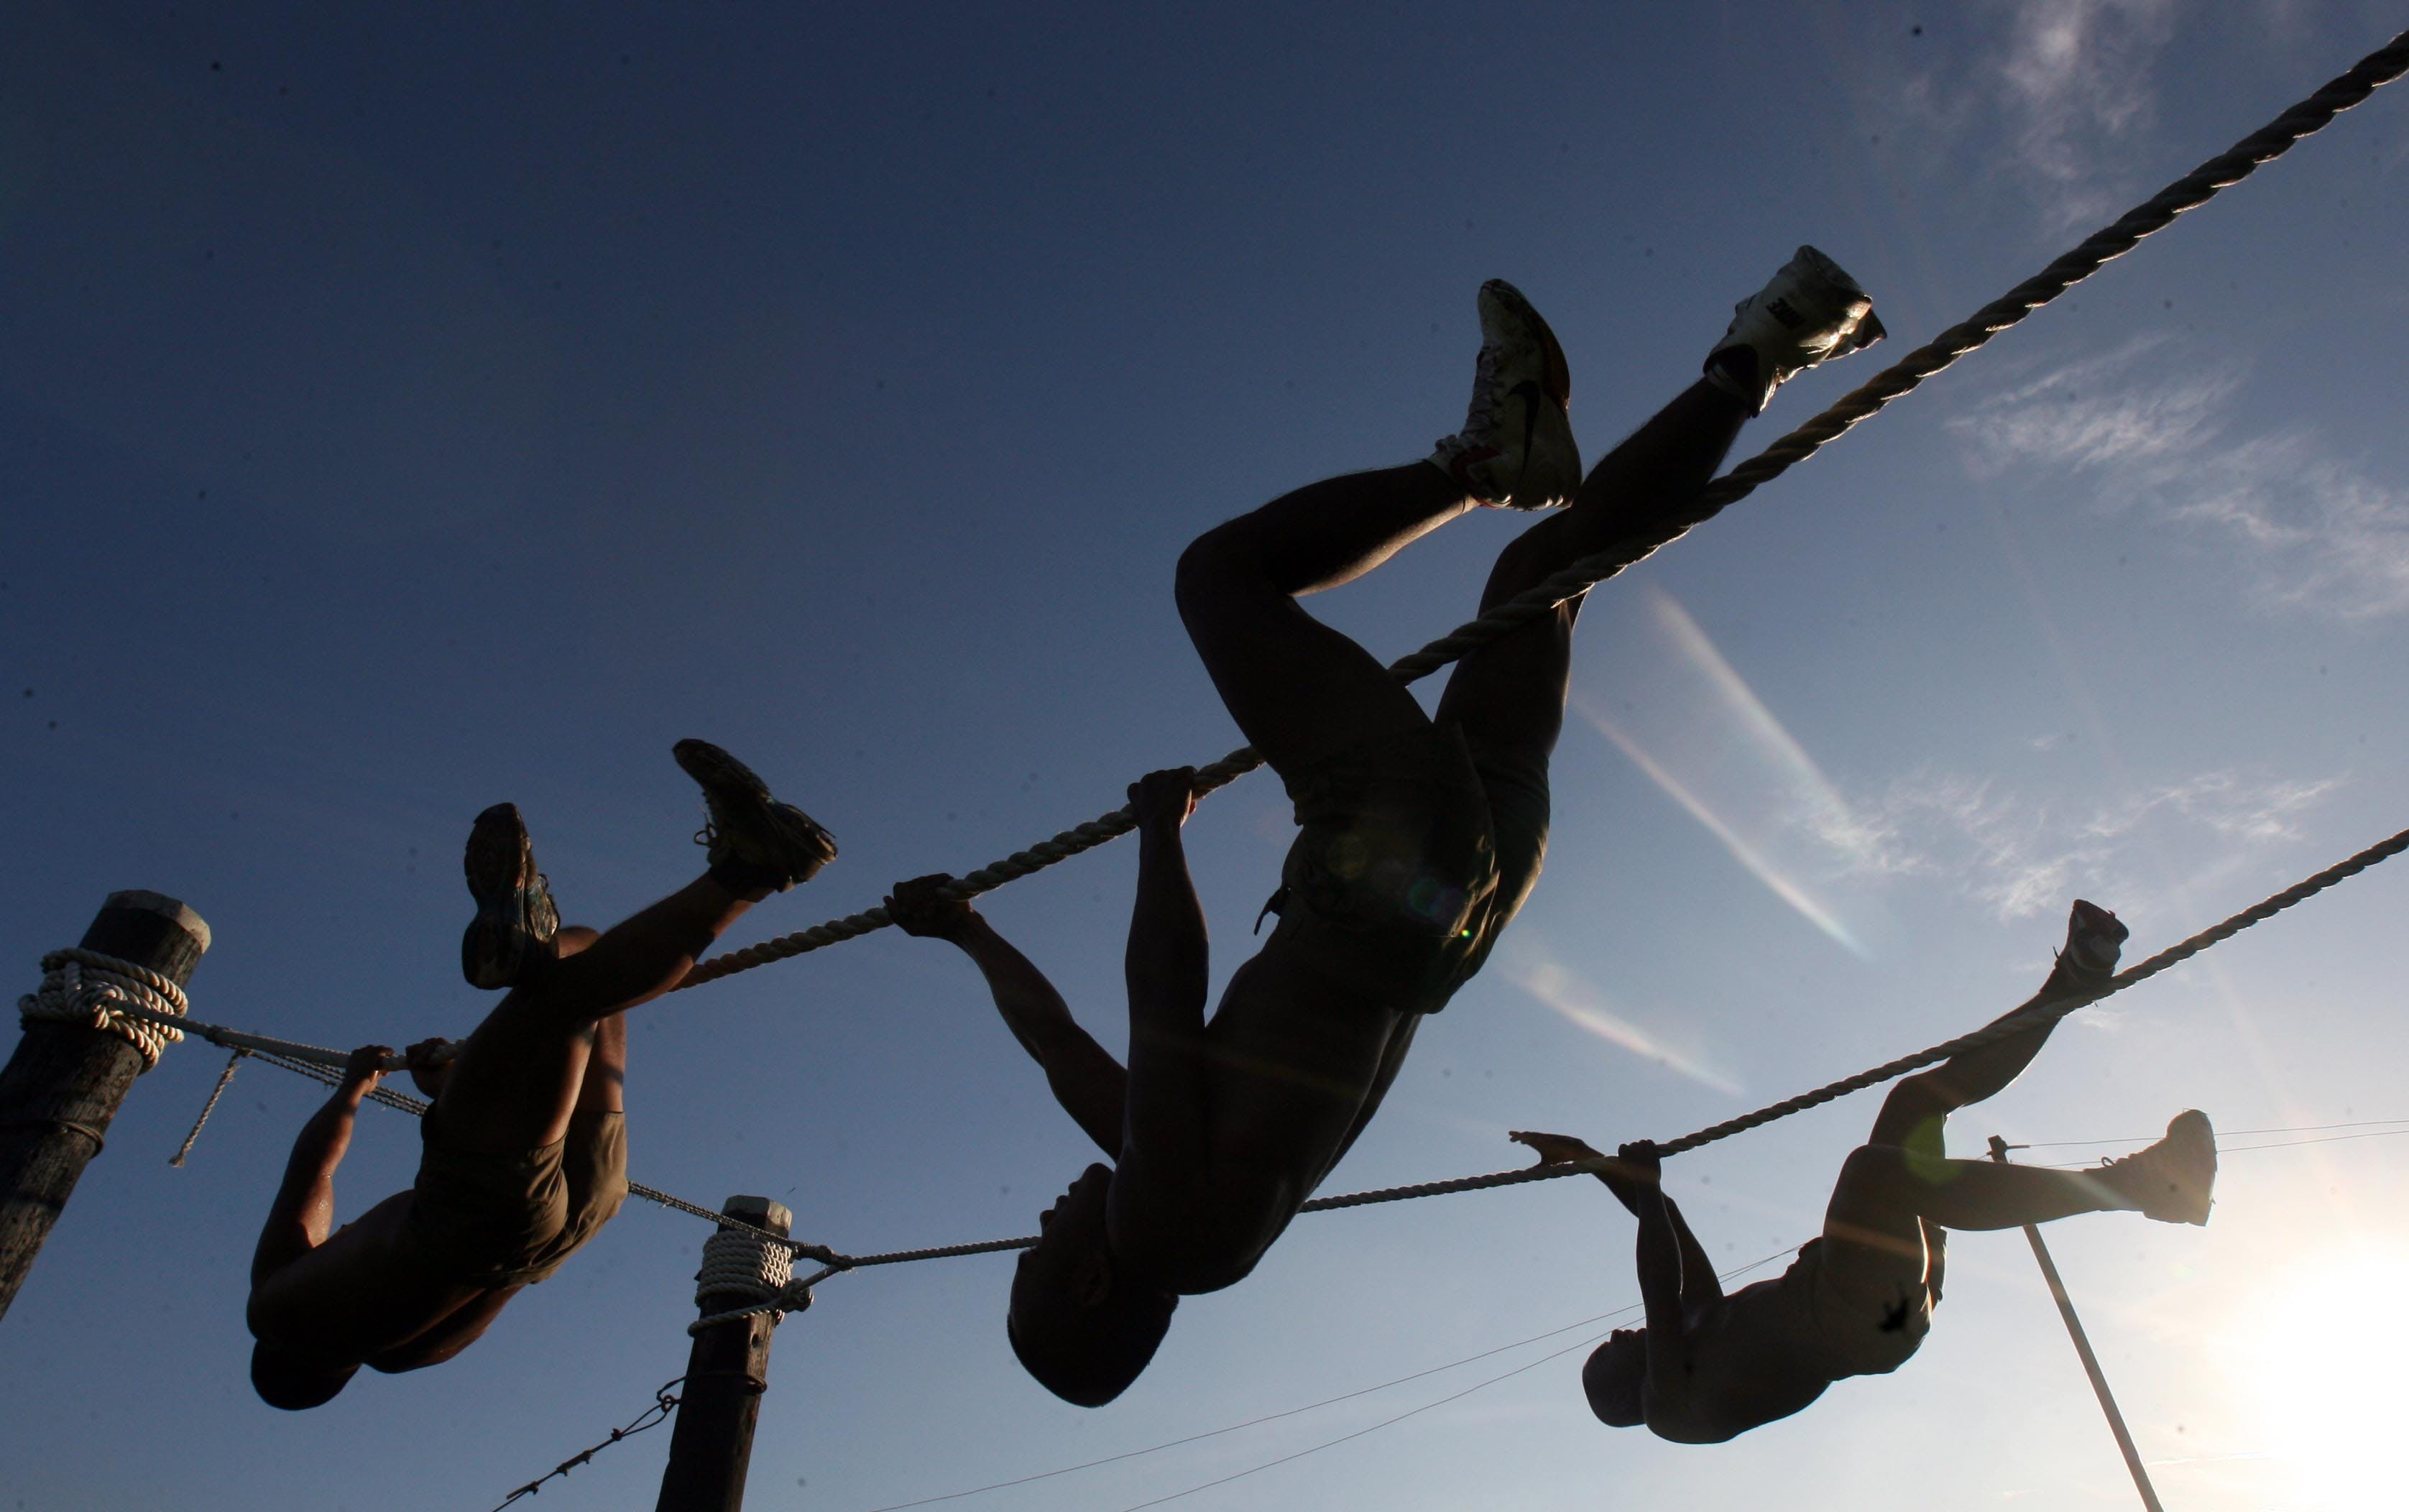 Three Man Climbing on Rope Under the Sunset